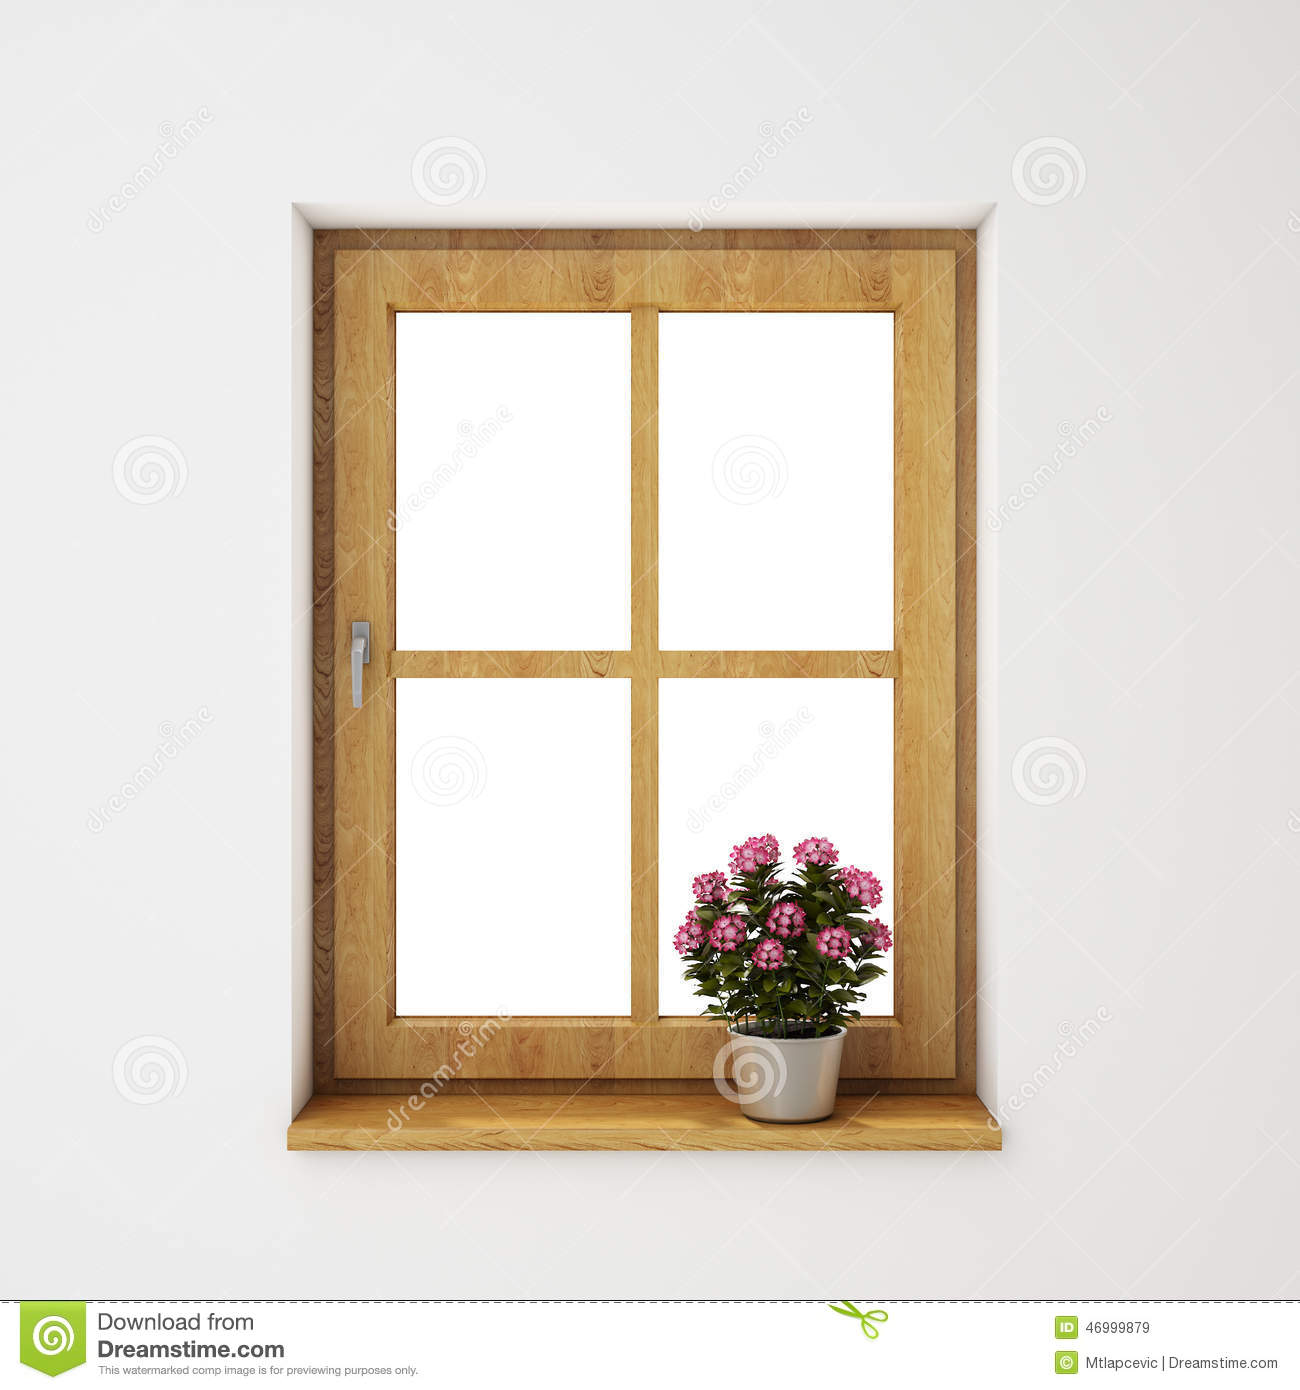 Vintage wooden window frame with curtain and flowerpot stock - Wooden Window Frame With Flowerpot On The White Wall Background Royalty Free Stock Images